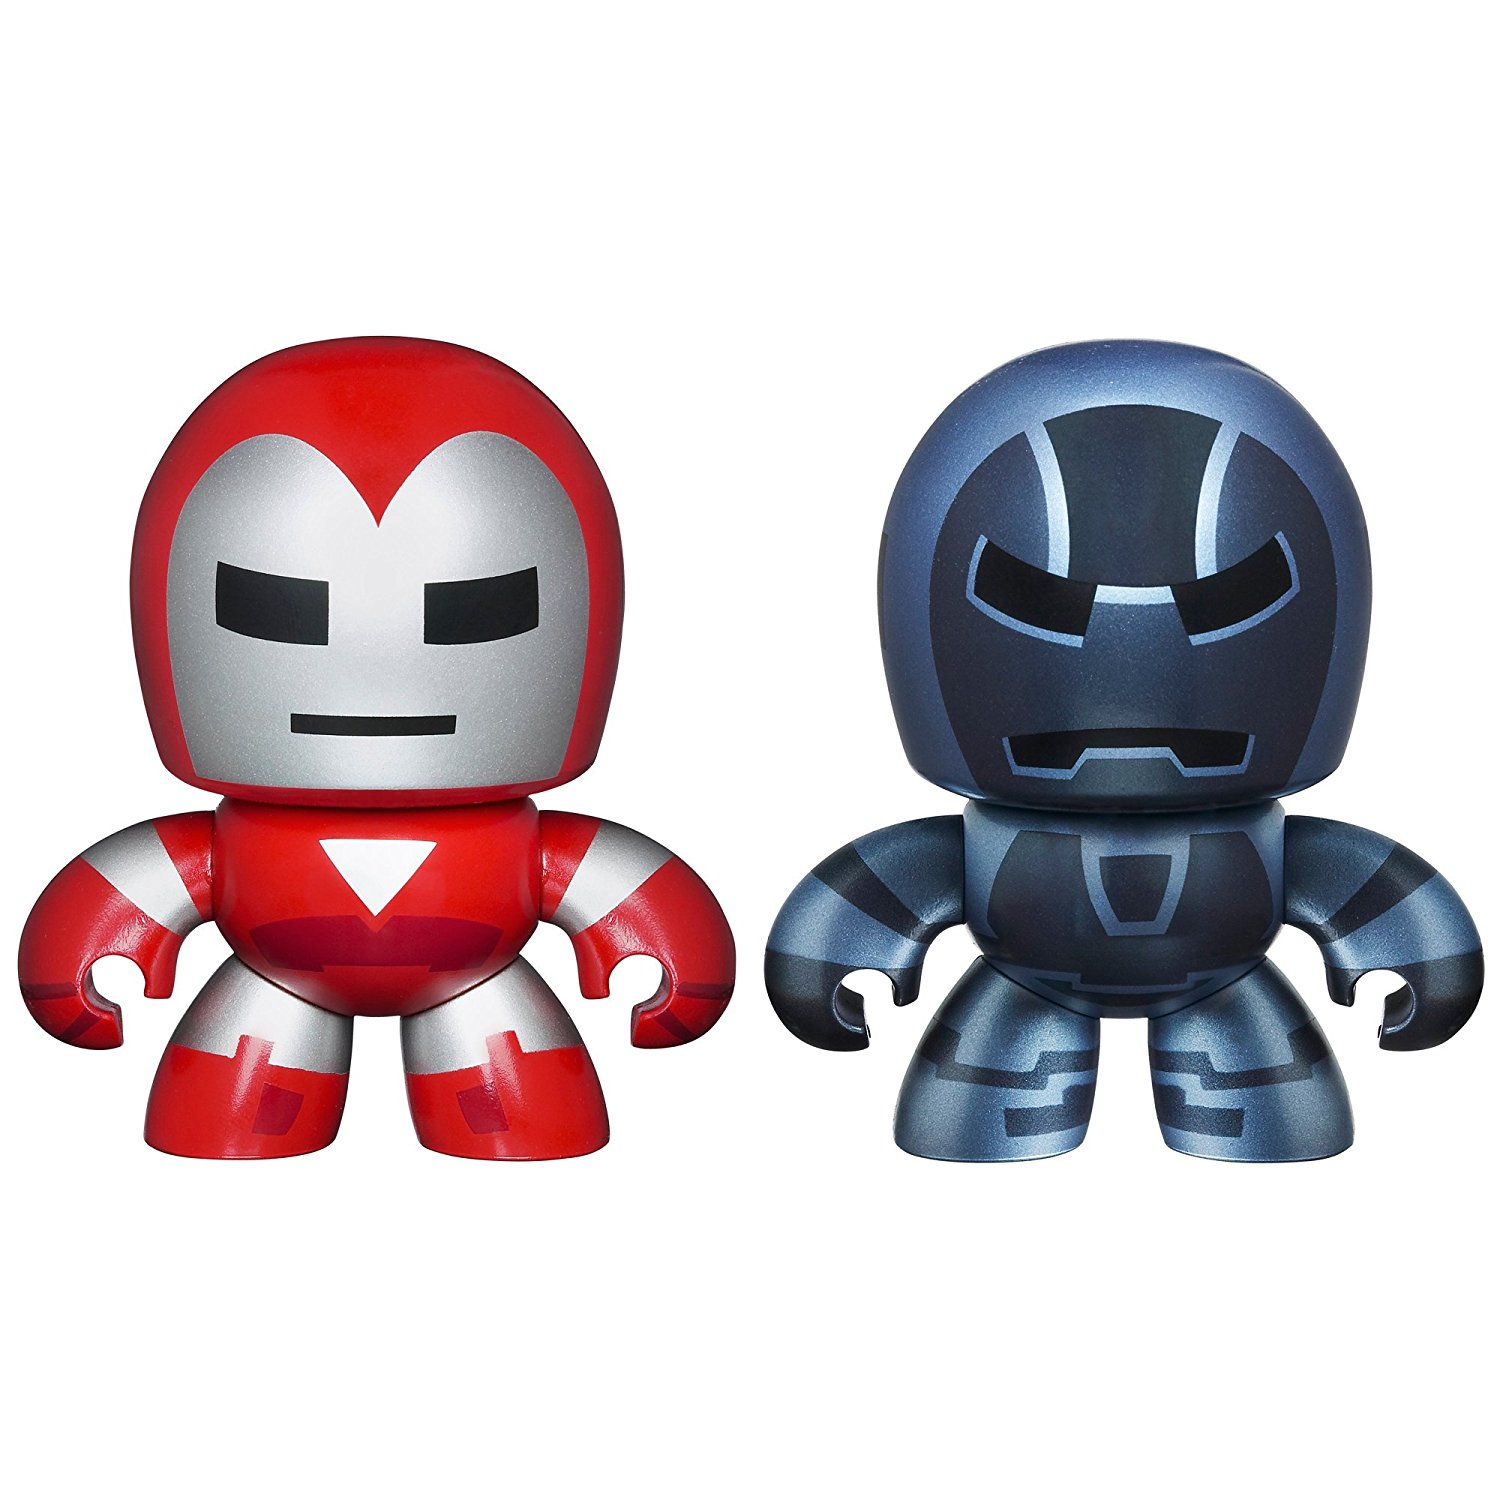 Marvel Avengers Mini Mighty Muggs 2 pack Silver Centurion vs. Iron Monger, Your tiny, spunky, chunky SILVER CENTURION figure is ready to do.., By Hasbro Ship from US